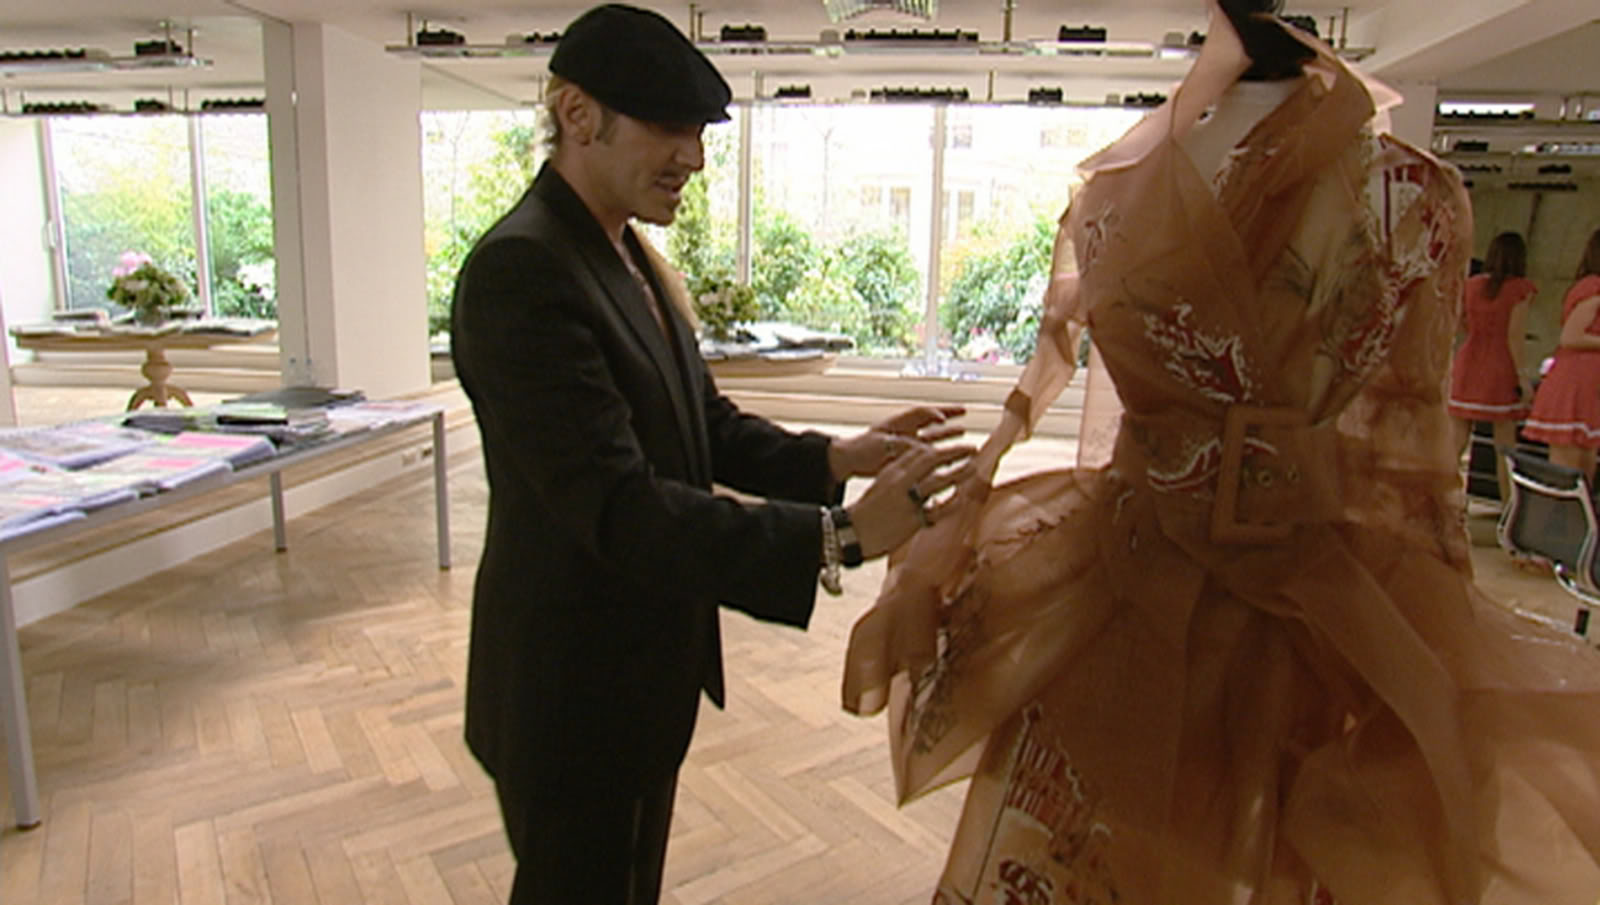 015 Essay Example What Does Fashion Mean To You Couture Galliano Stupendous Full